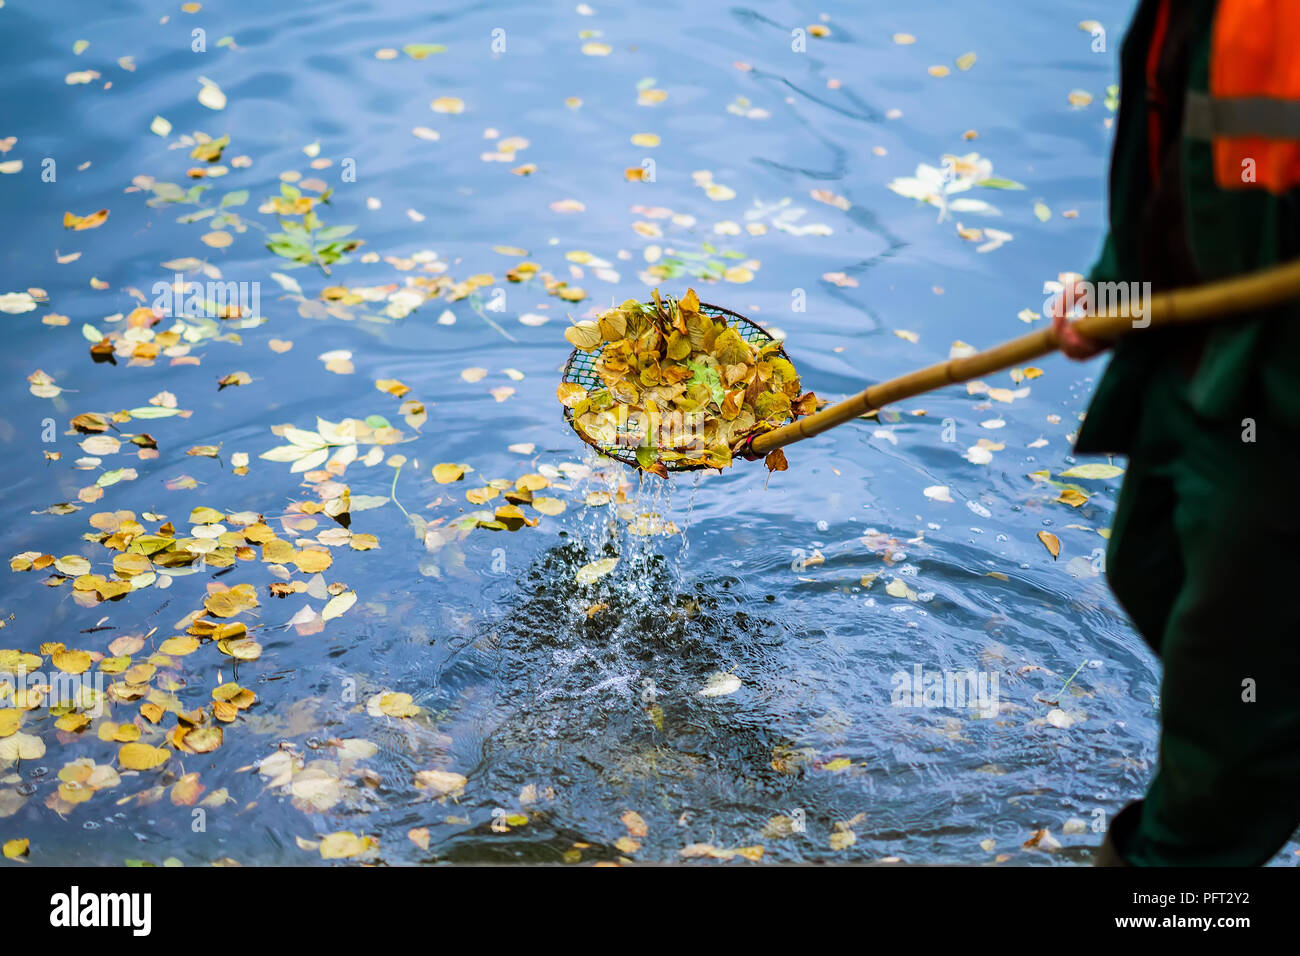 Cleaning swimming pond in the park from fallen leaves with special mesh in autumn, work in the city outdoors, , real scene - Stock Image